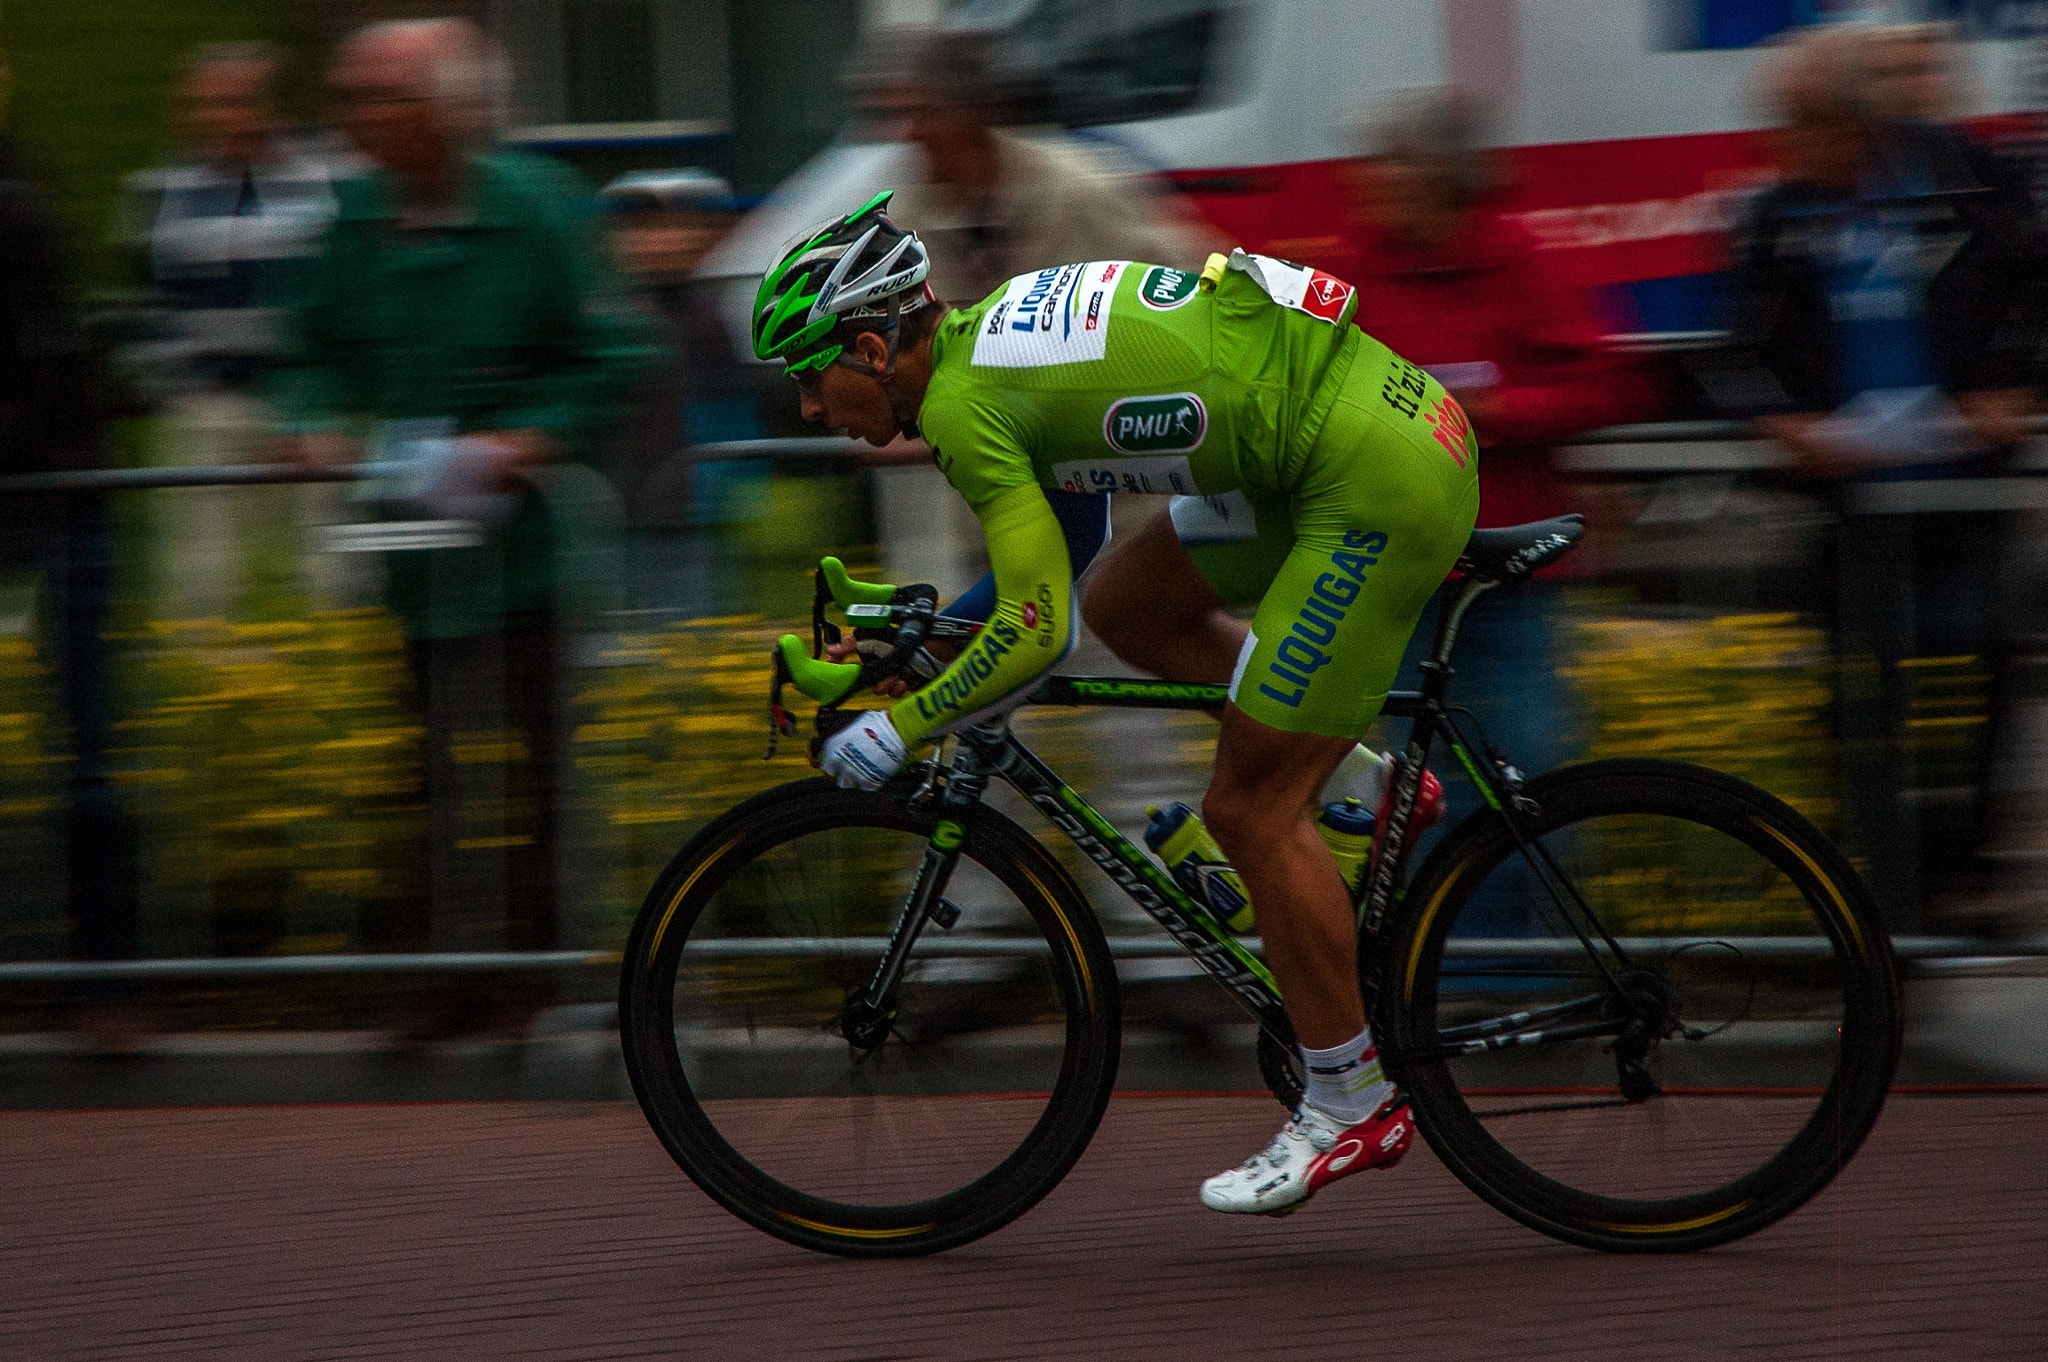 Photograph Peter Sagan by Aldert Cuperus on 500px